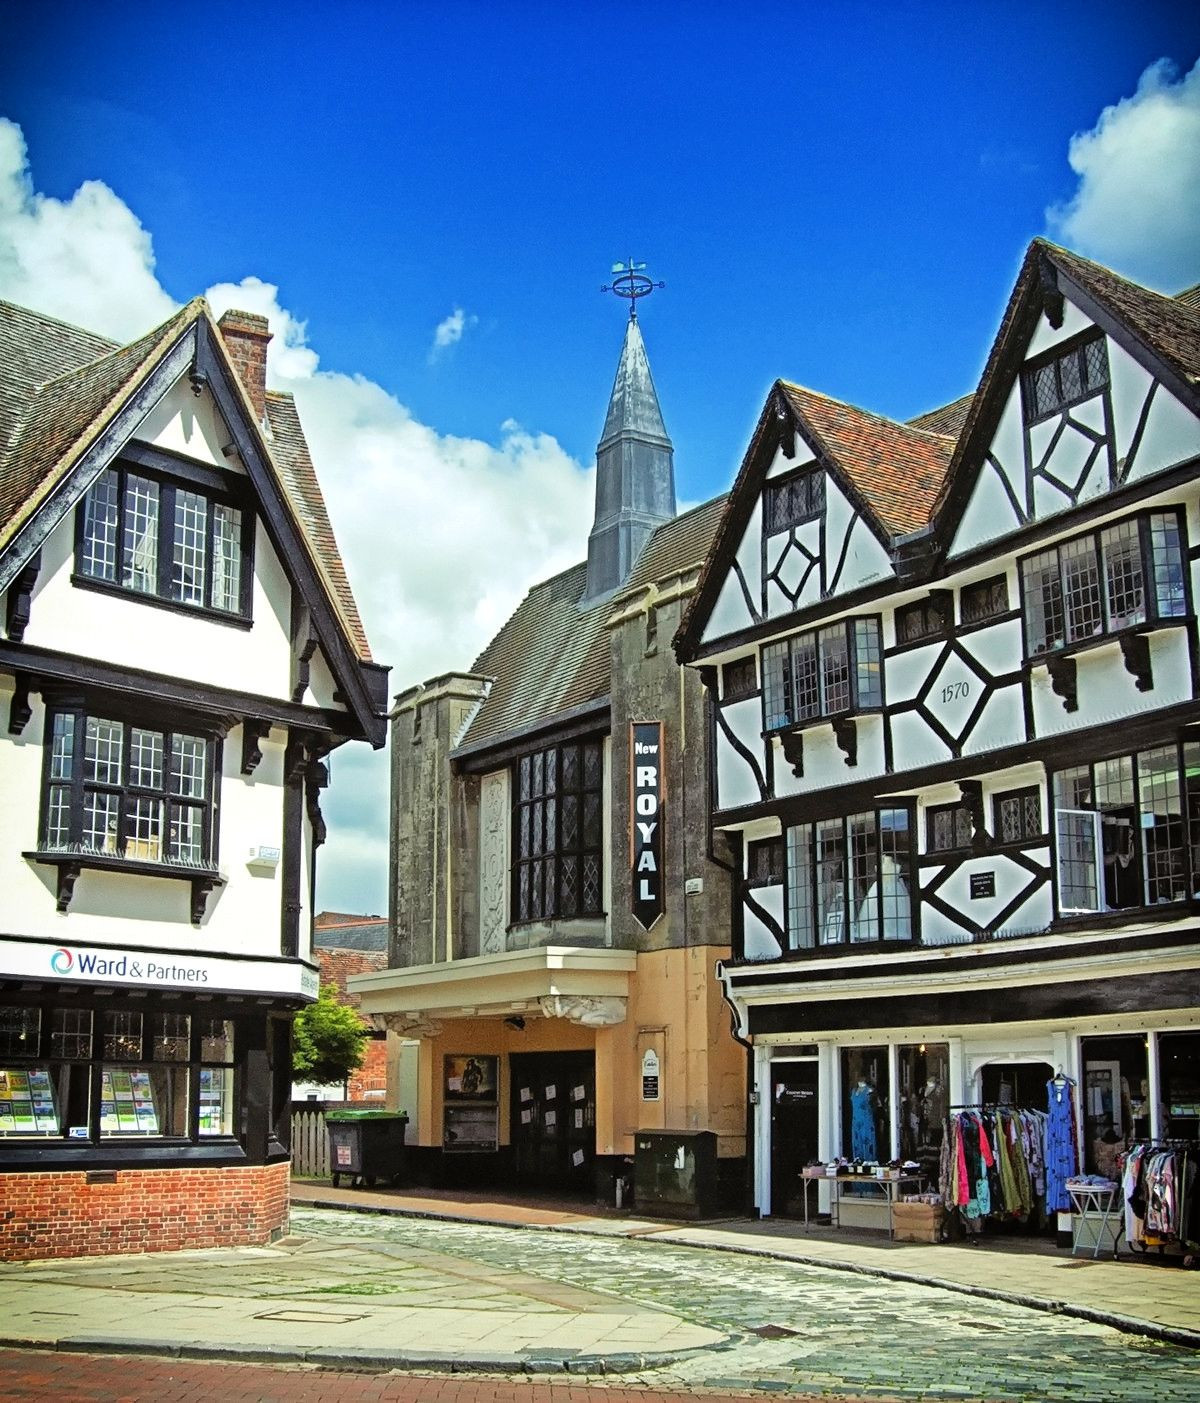 Elizabethan Tudor listed buildings in Faversham, Kent. Credit Jim Linwood